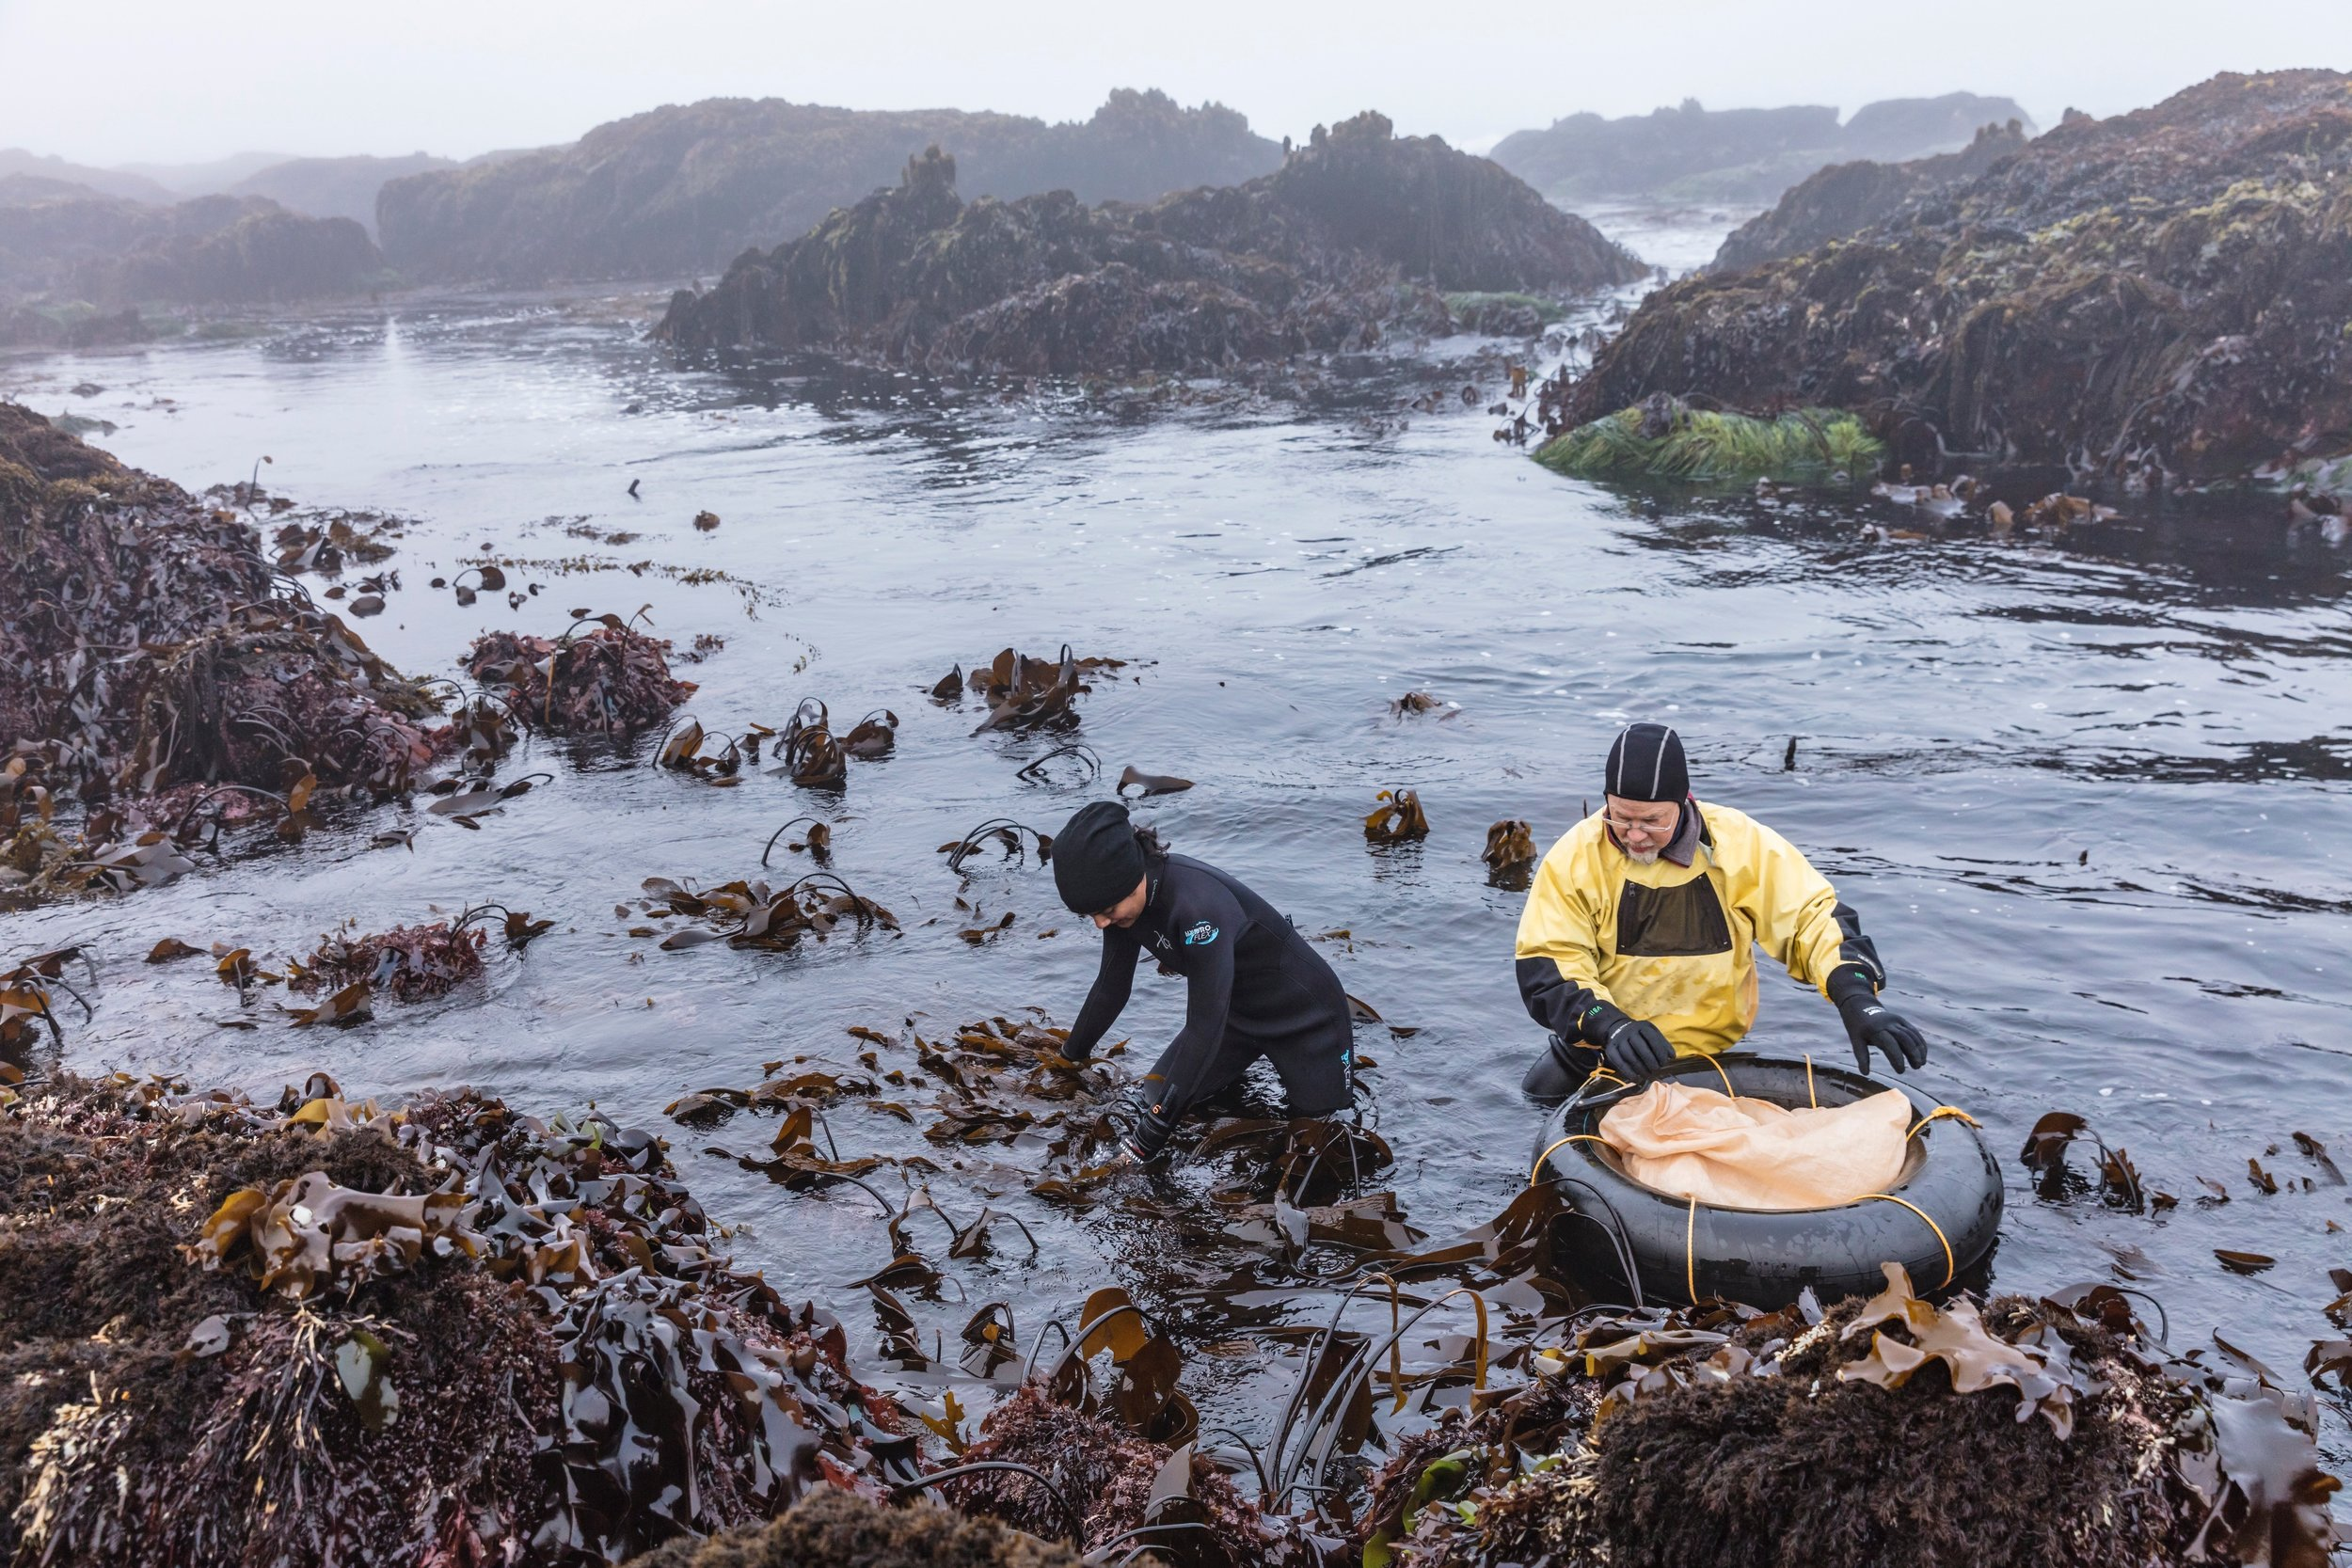 A small amount of seaweed is trimmed, never uprooted, ensuring the regenerative properties of the plant continue to thrive.